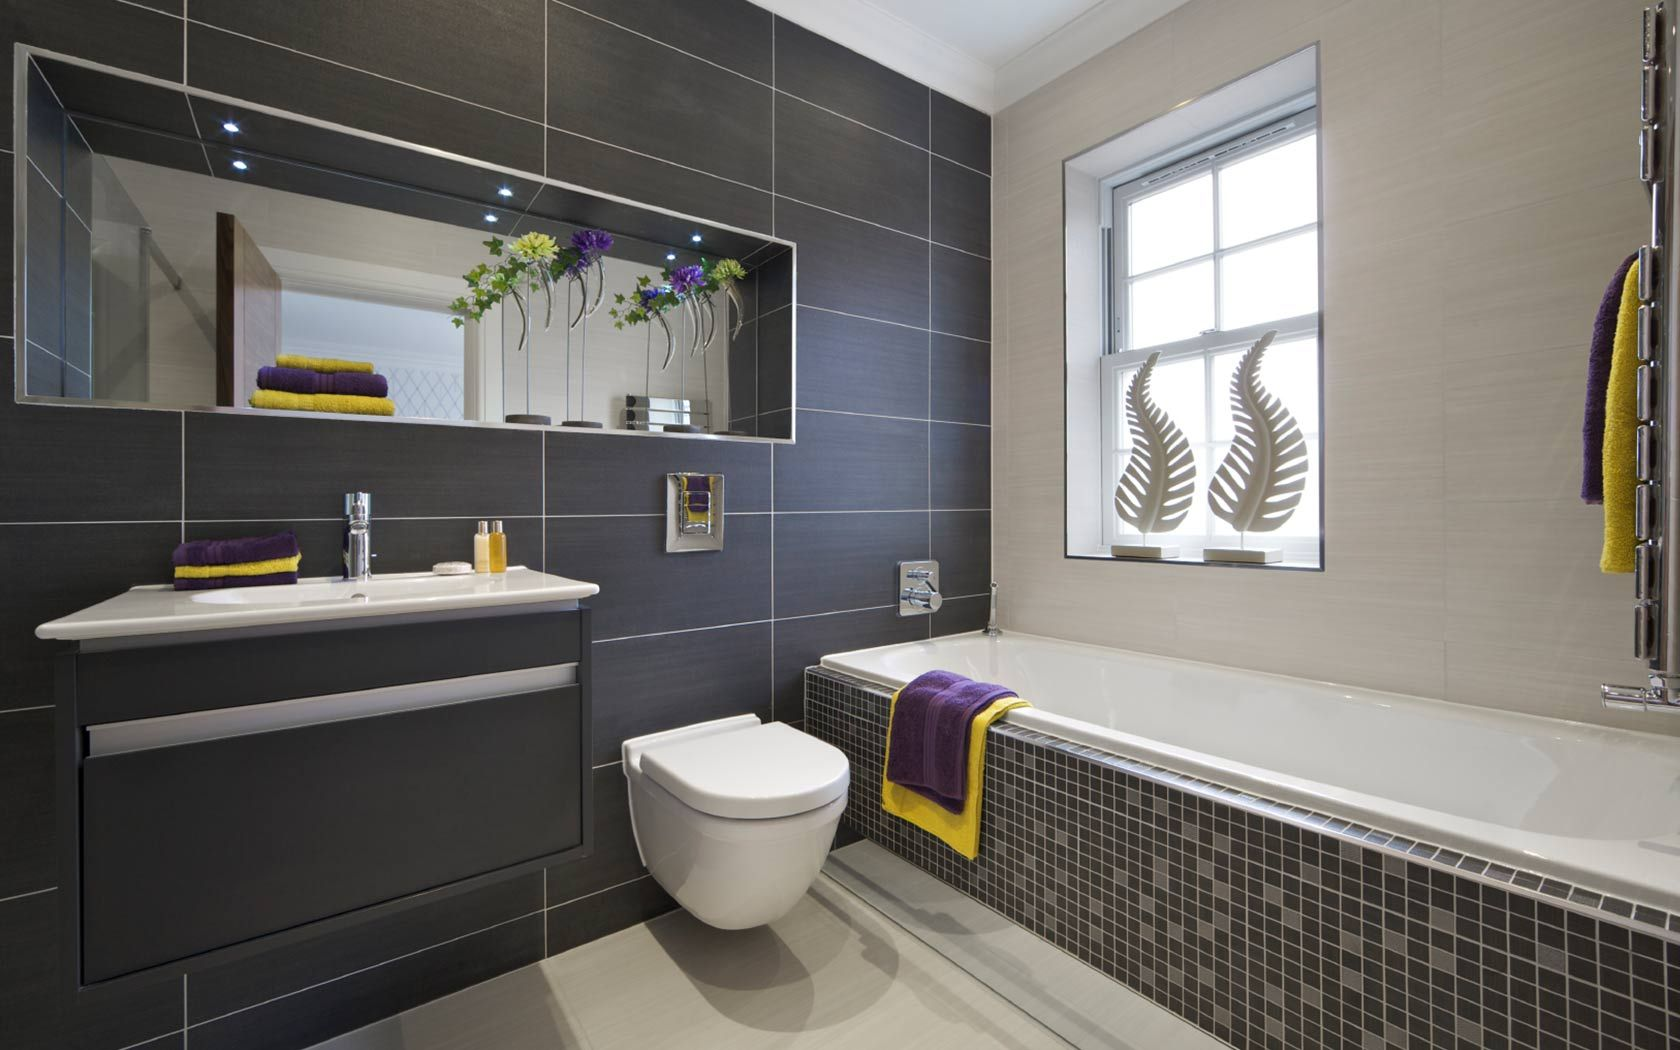 Bathroom Decor With Grey Walls : Refined gray bathroom ideas design and remodel pictures